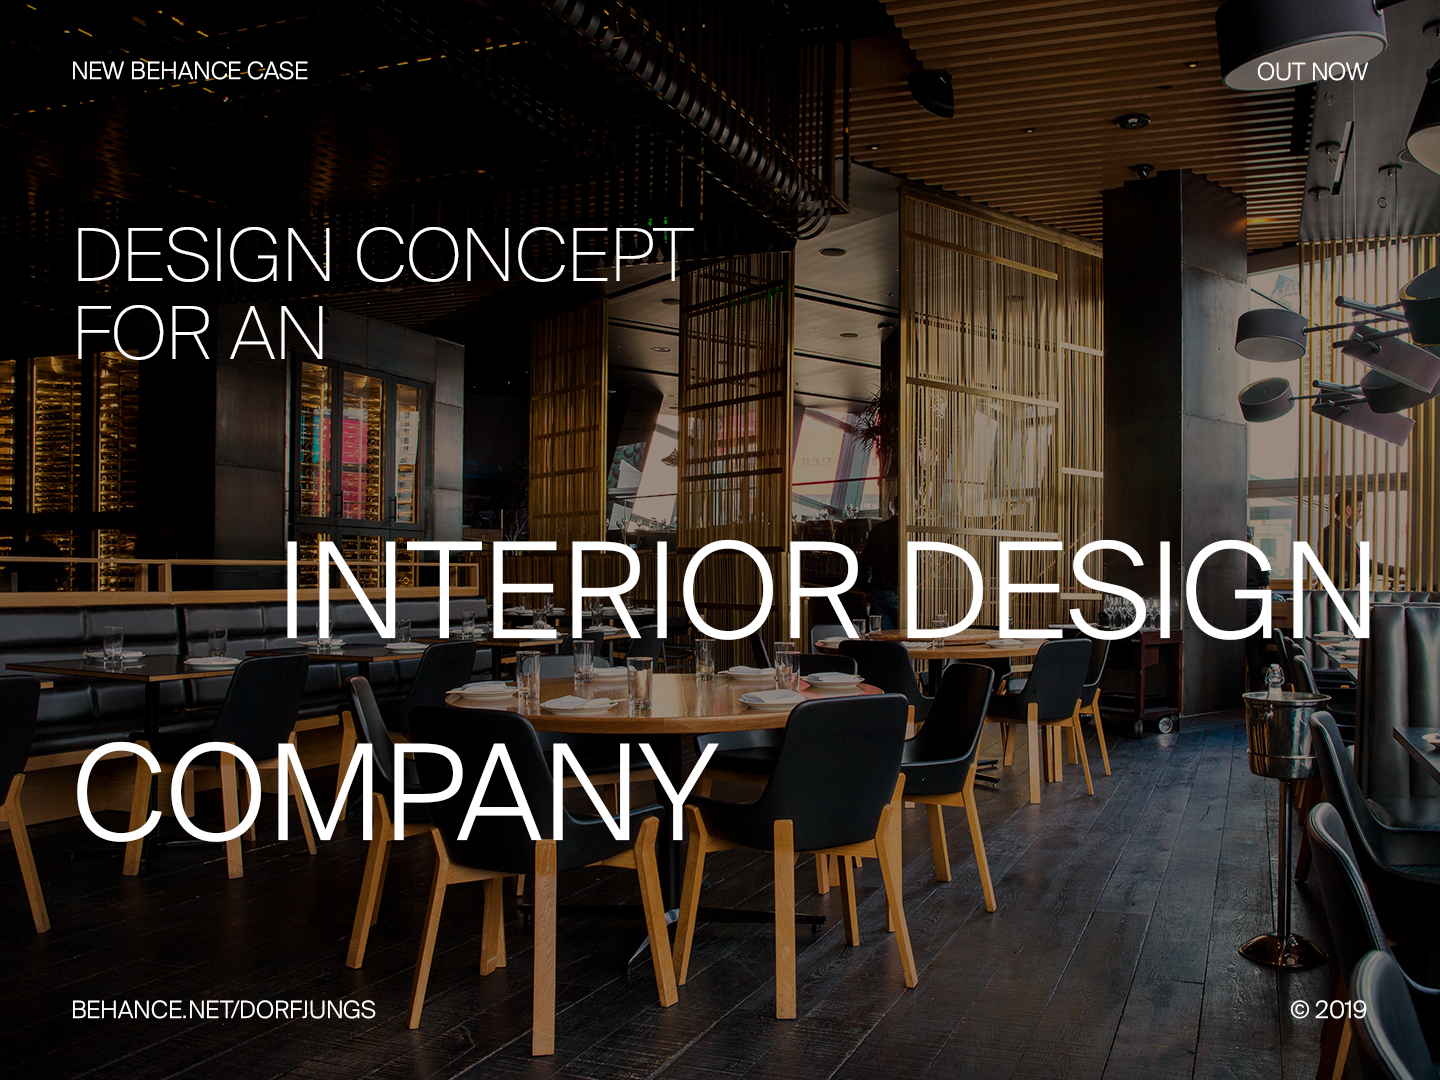 Interior Design Agency - Behance Case Study by Norman Dubois